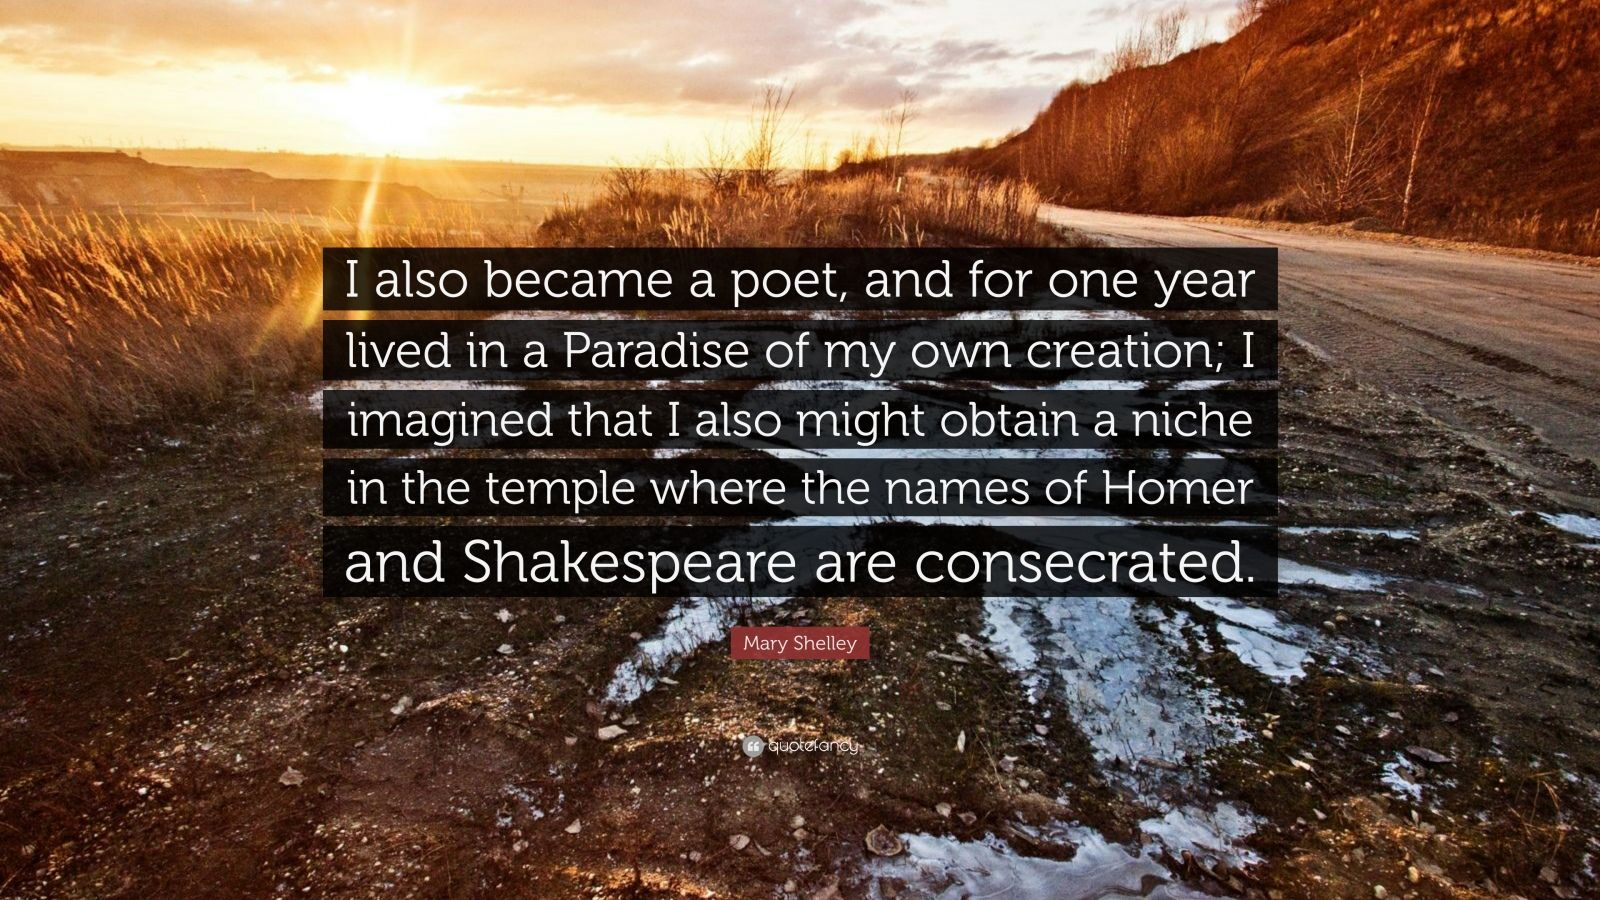 """Mary Shelley Quote: """"I also became a poet, and for one year lived in a Paradise of my own creation; I imagined that I also might obtain a niche in the temple where the names of Homer and Shakespeare are consecrated."""""""